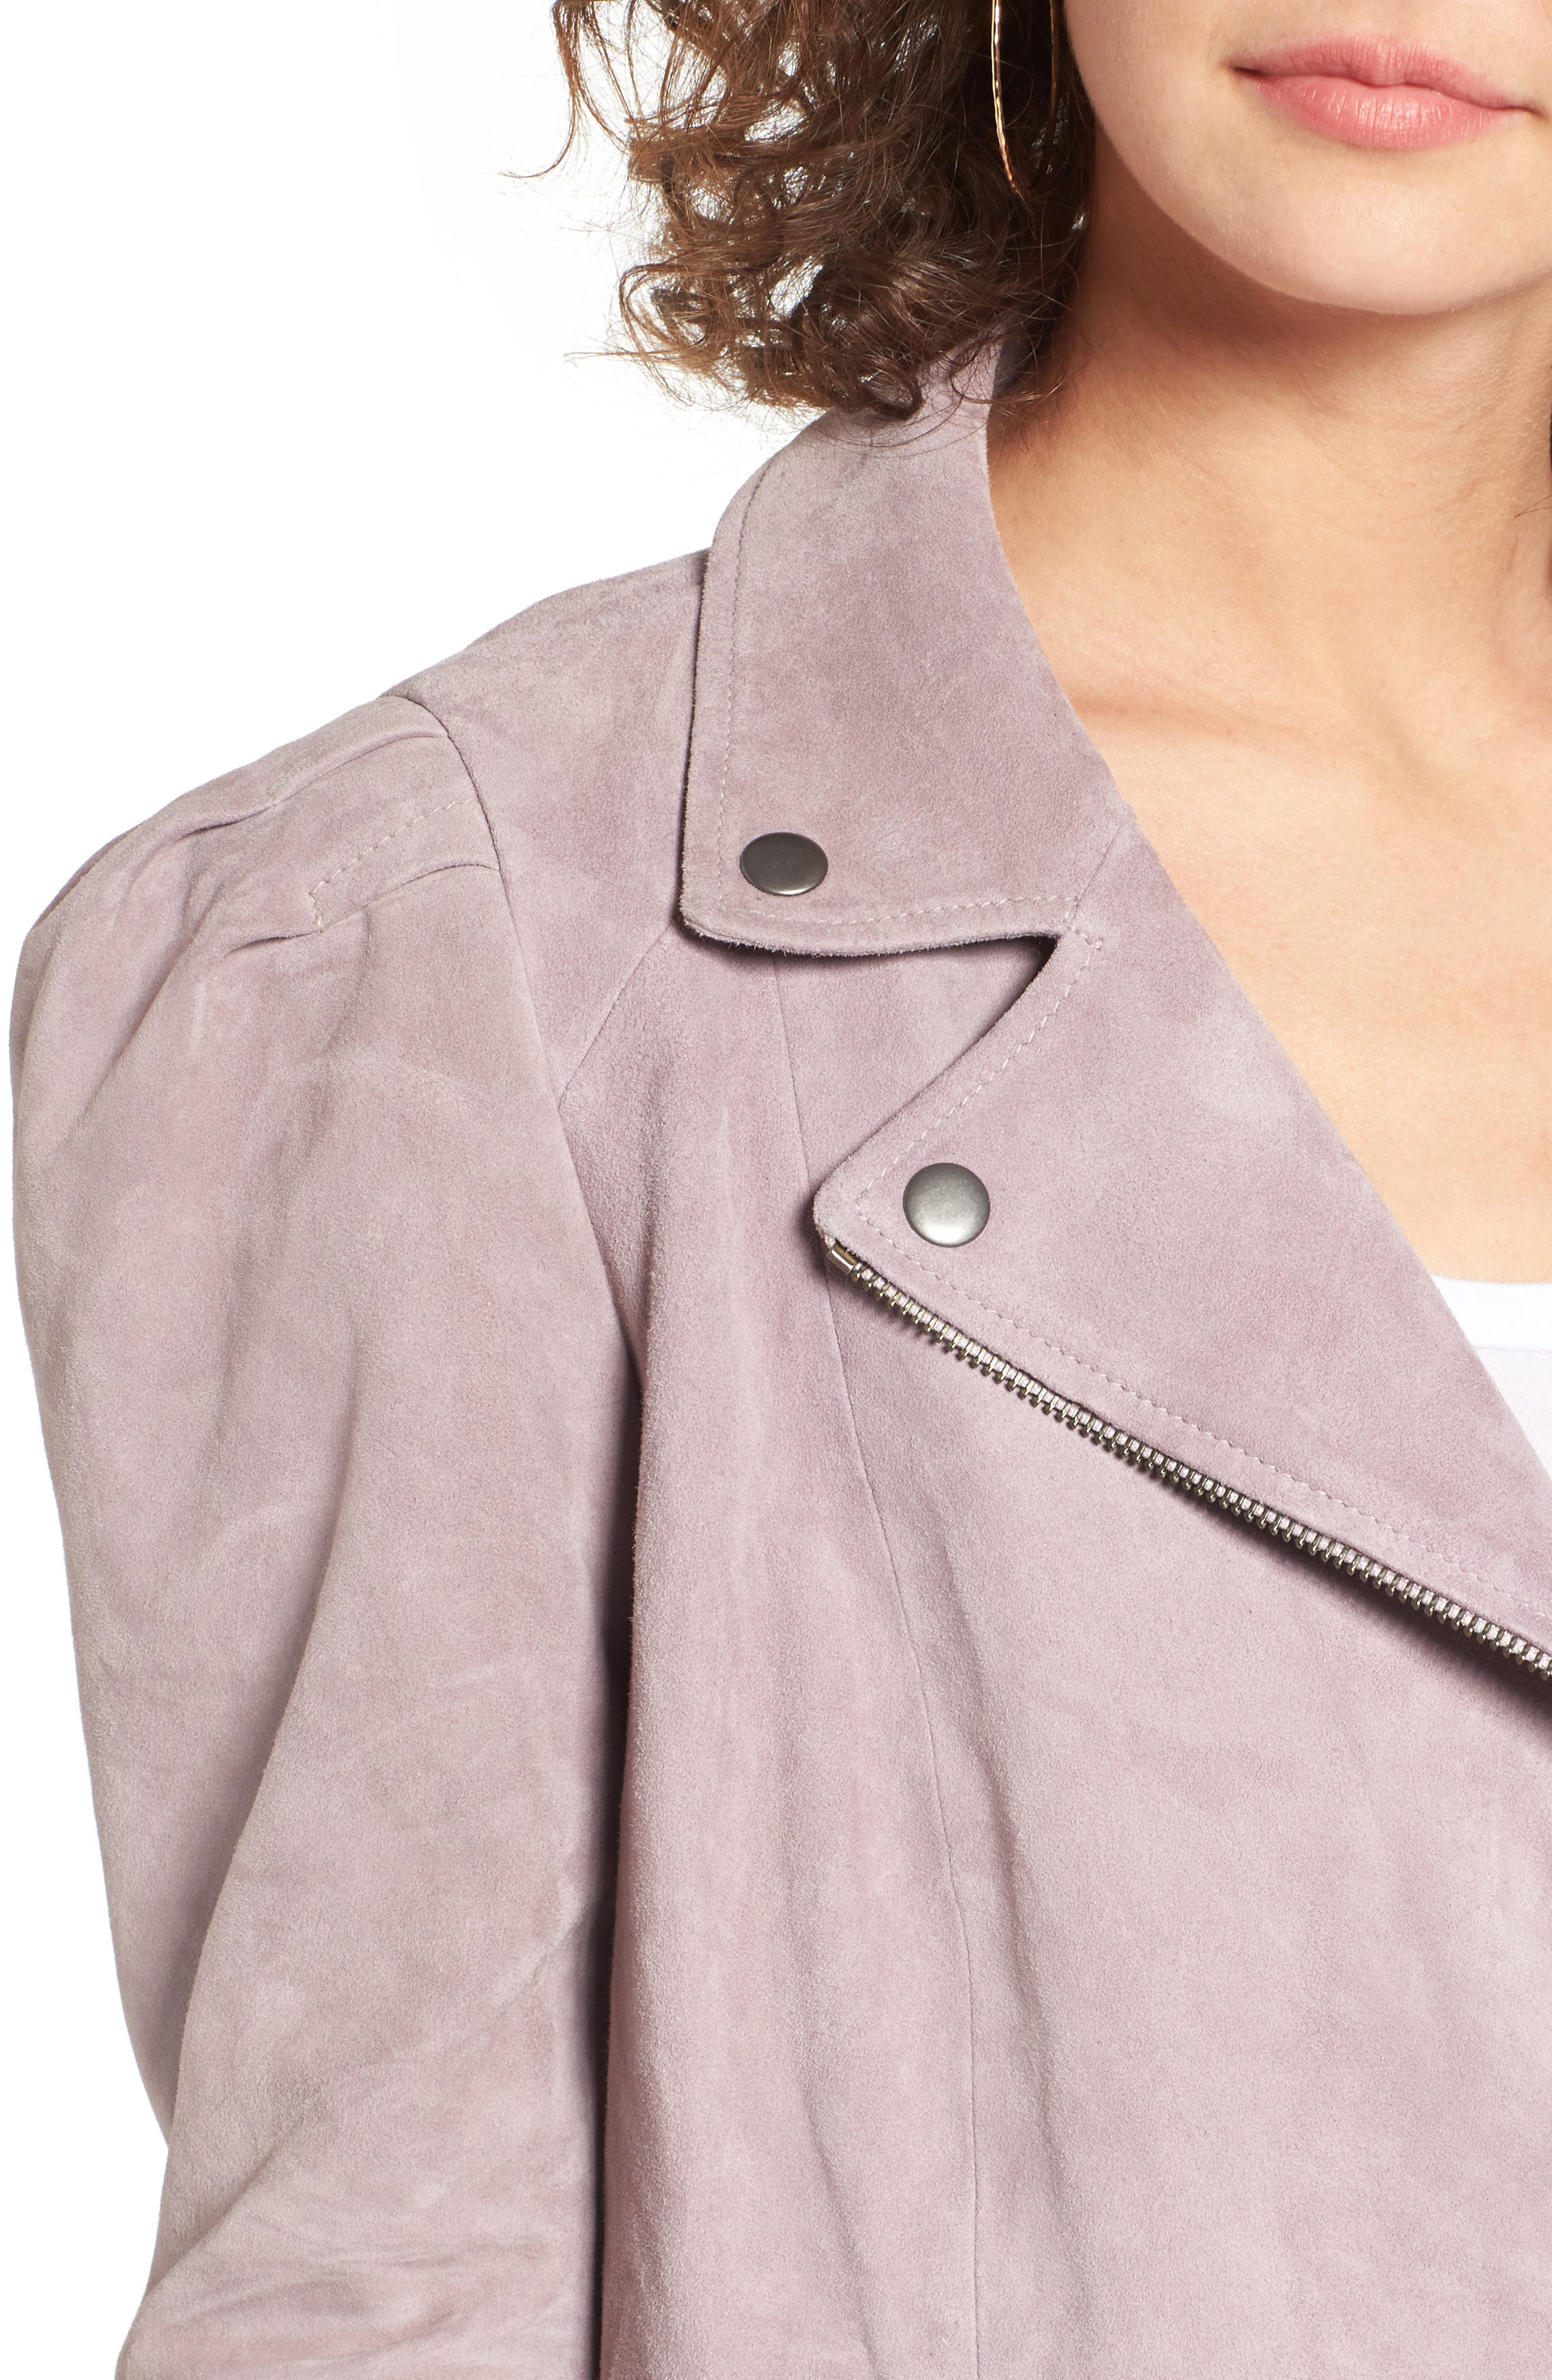 Suede Moto Jacket,                             Alternate thumbnail 4, color,                             510